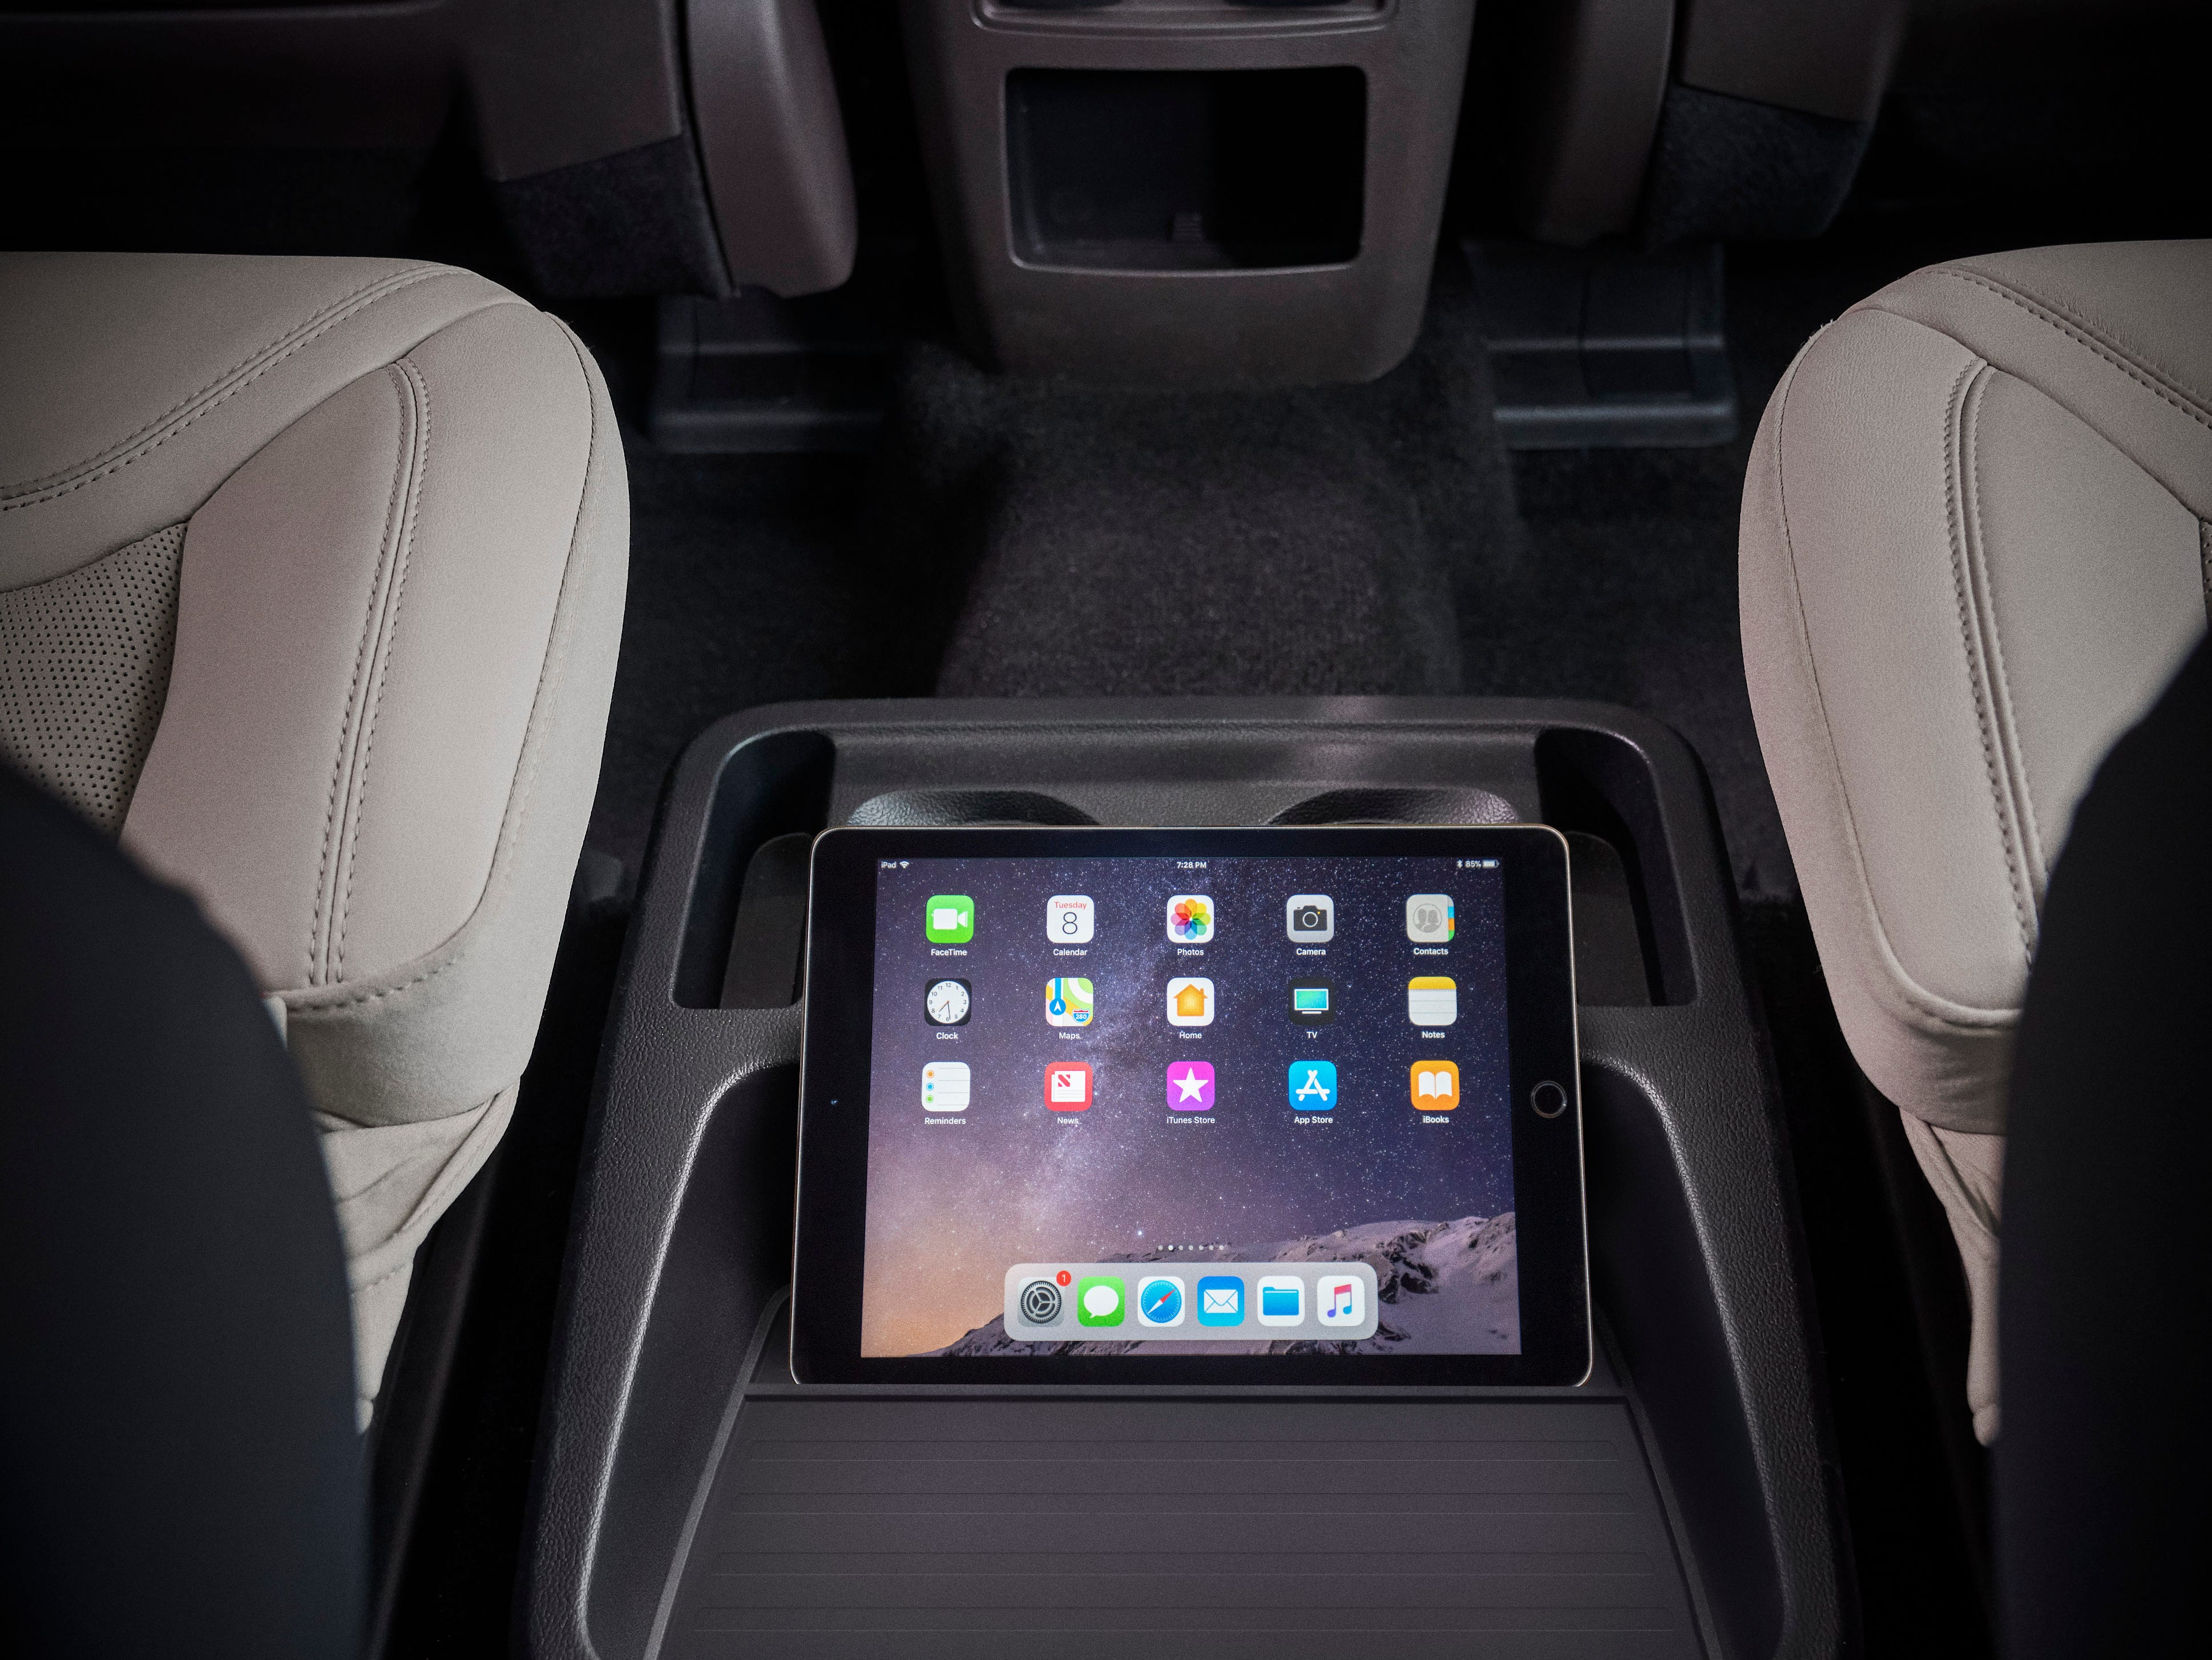 Passengers in all three rows can utilize FordPass Connect, a standard feature that serves up 4G LTE Wi-Fi for up to 10 mobile devices with a compatible wireless subscription service.